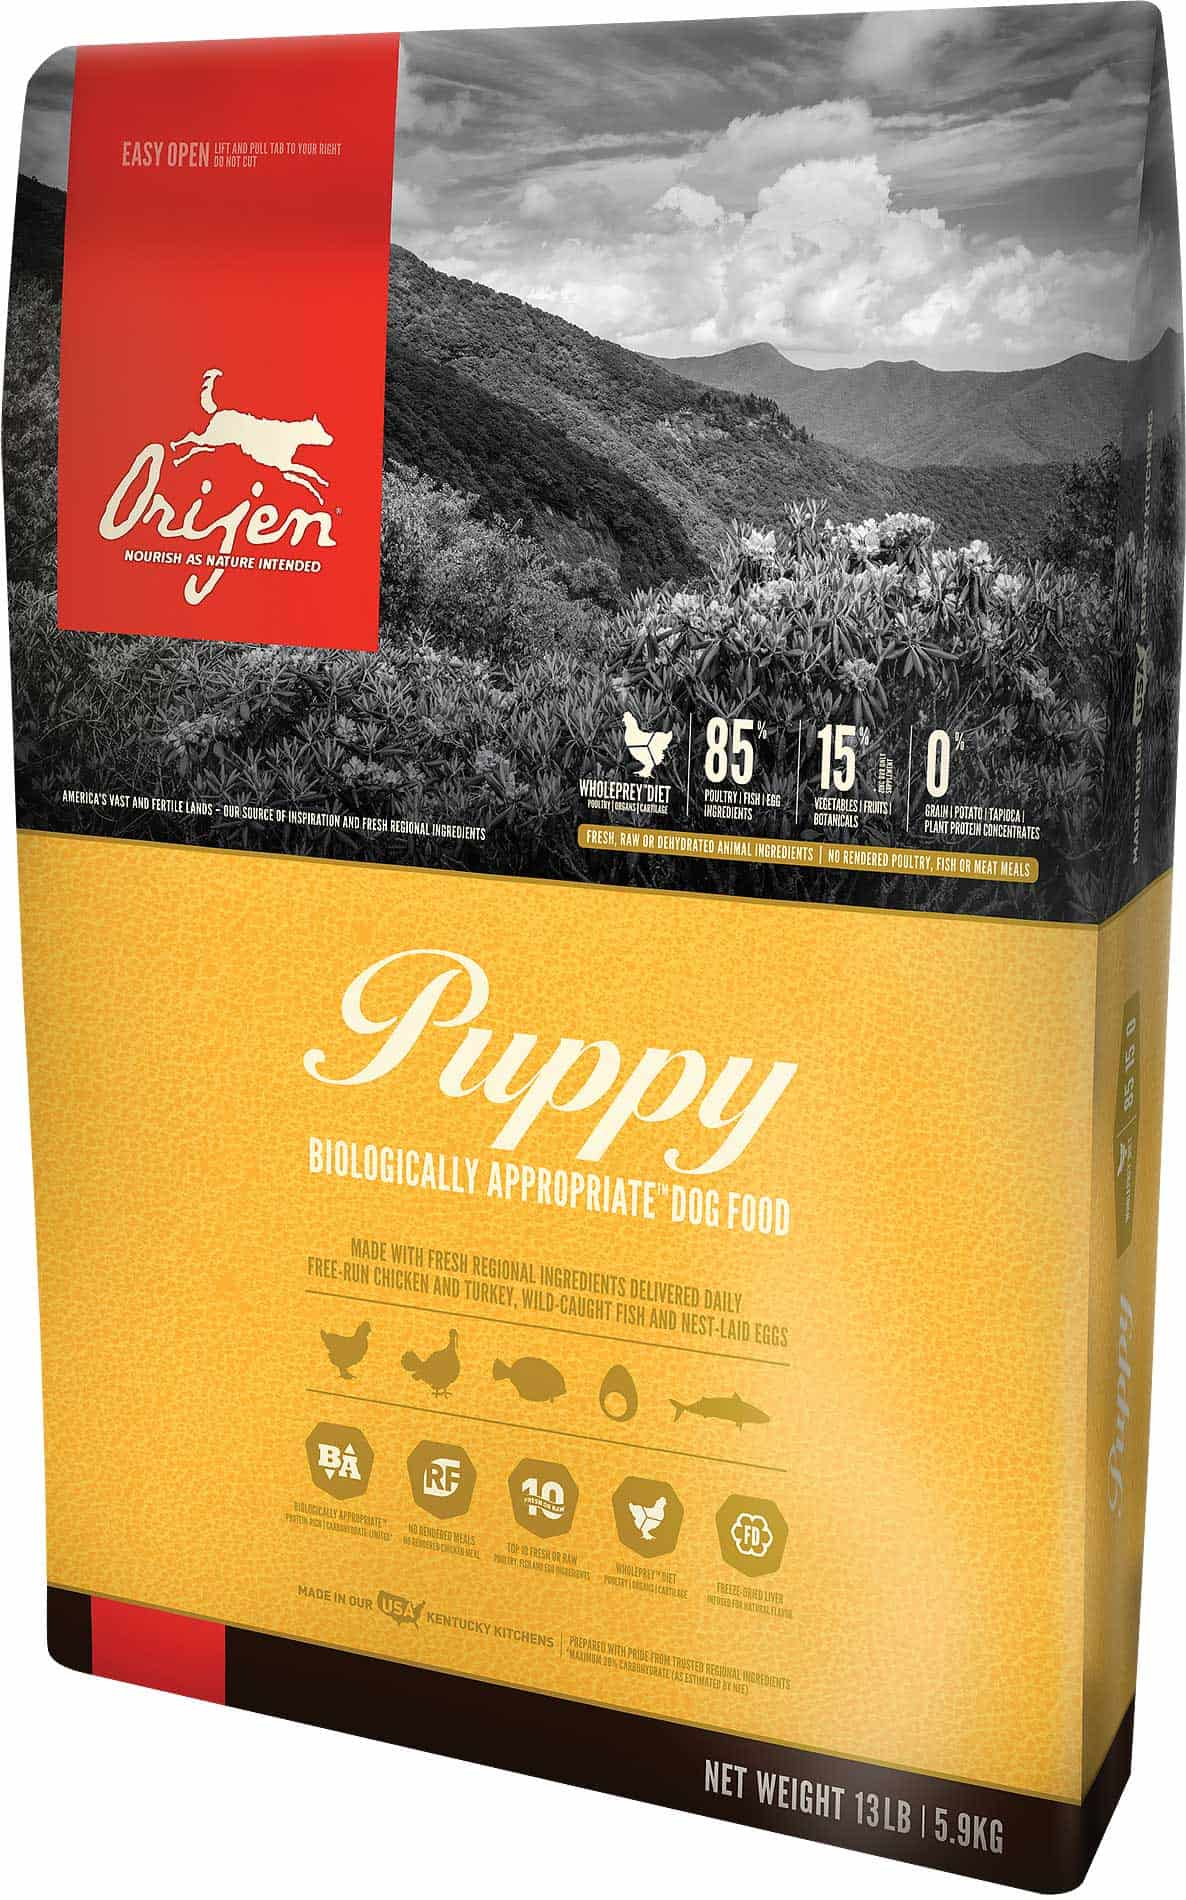 Orijen Puppy Review Dry Puppy Food Pet Food Reviewer